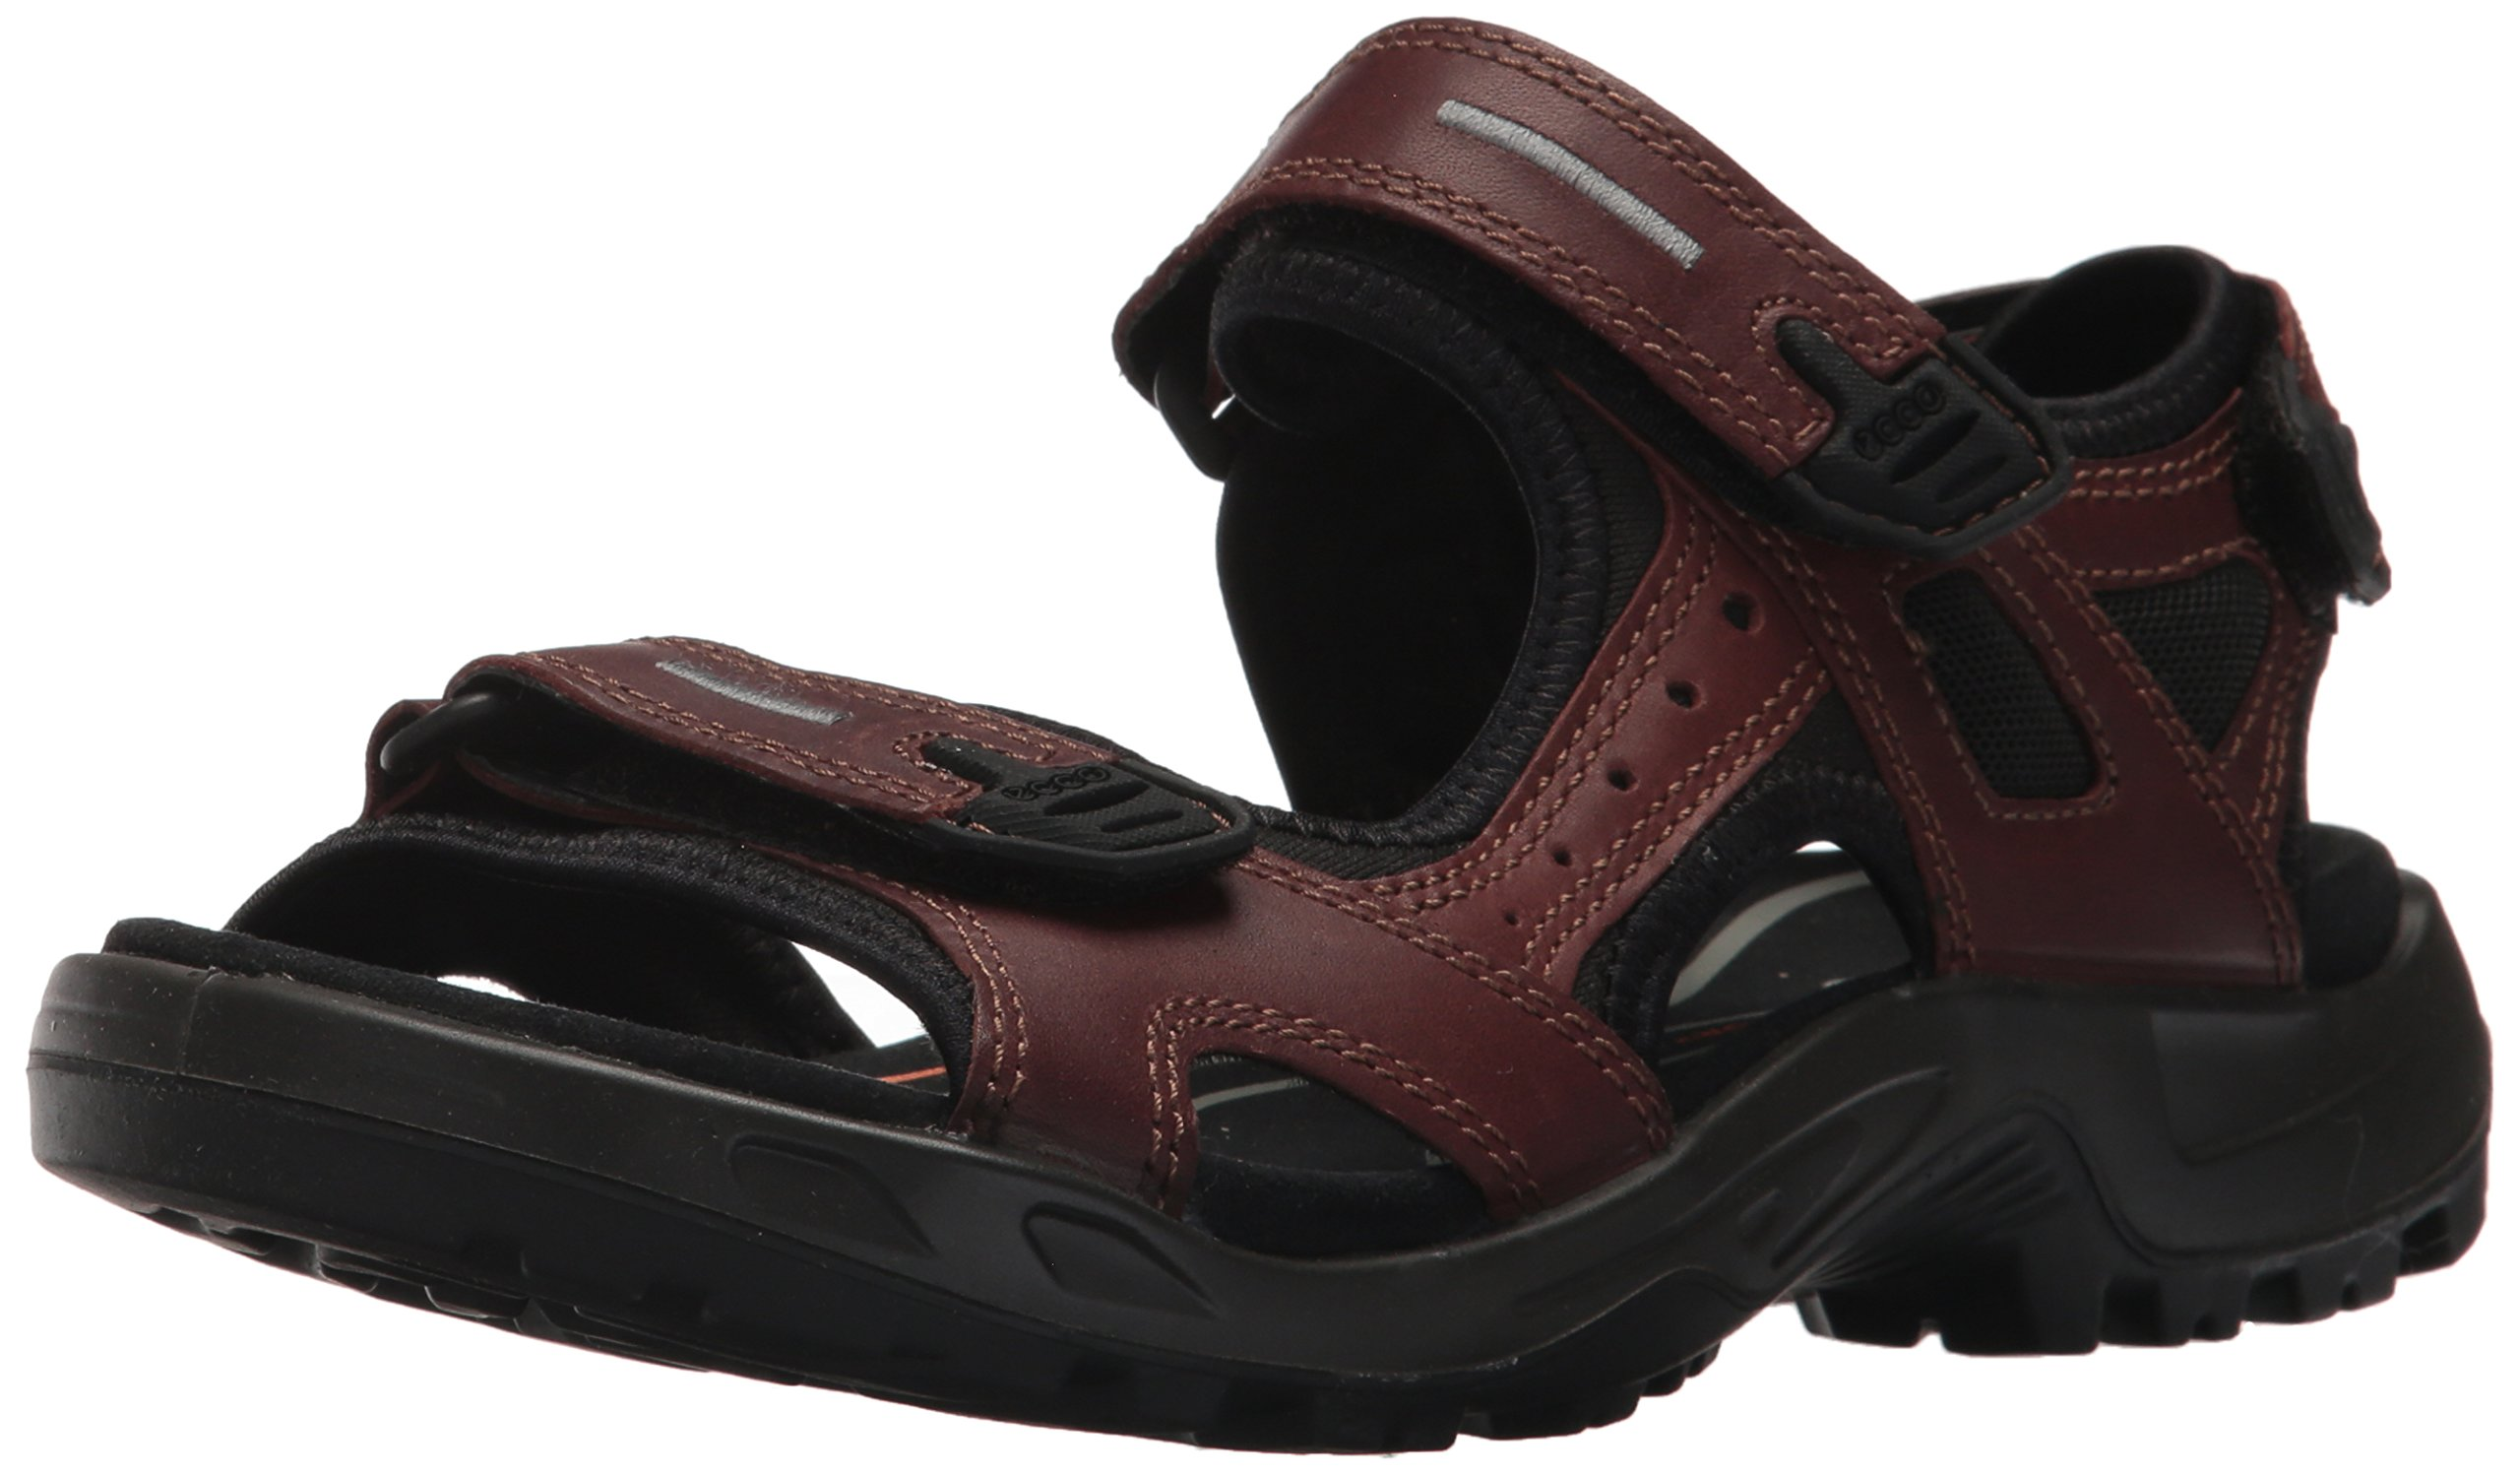 ECCO Men's Yucatan Lux Athletic Sandal, Brandy, 46 EU/12-12.5 M US by ECCO